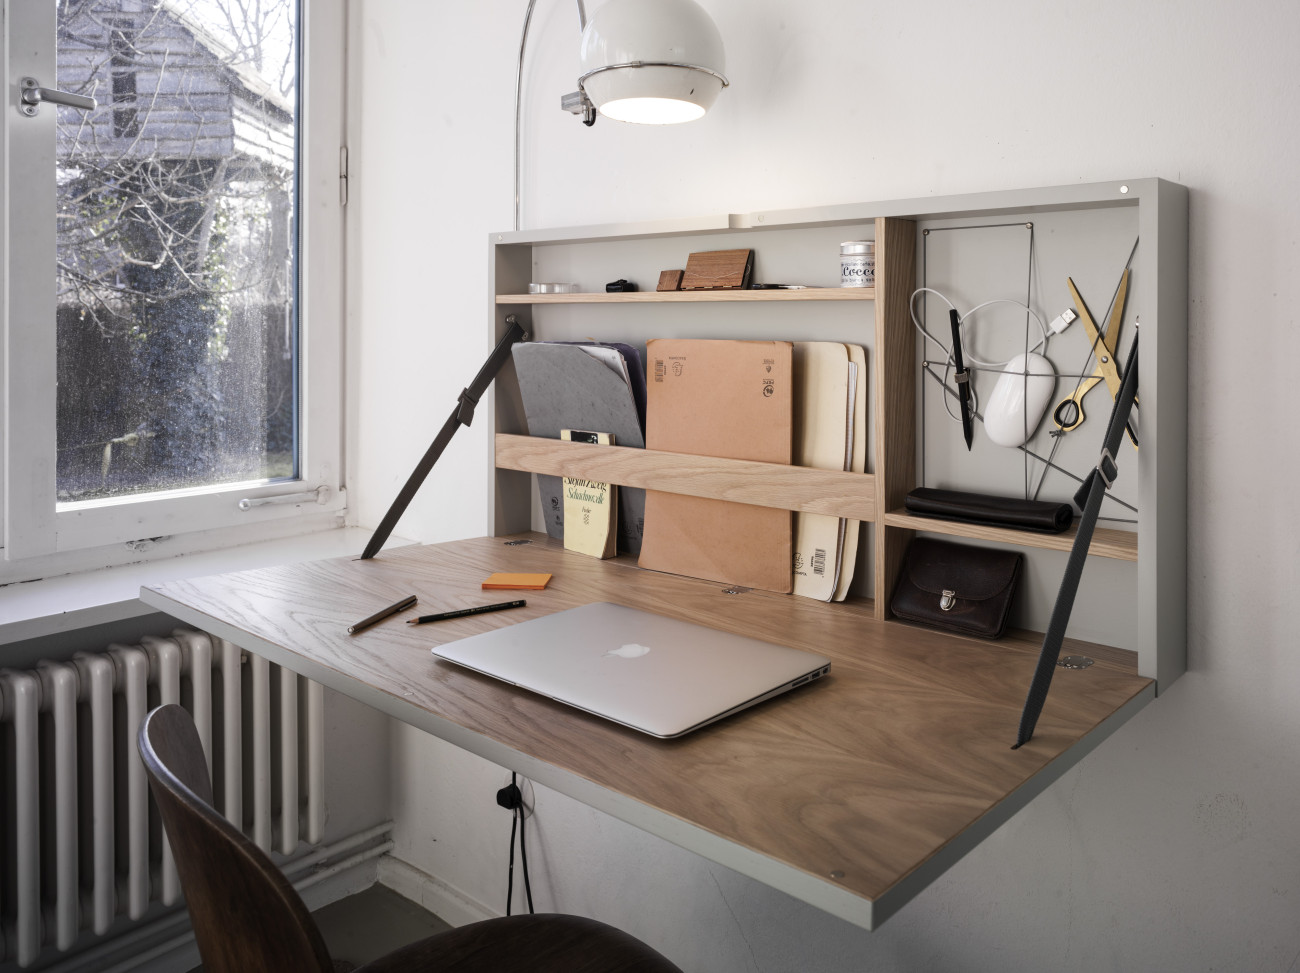 Creare un angolo studio in casa per lo smart working